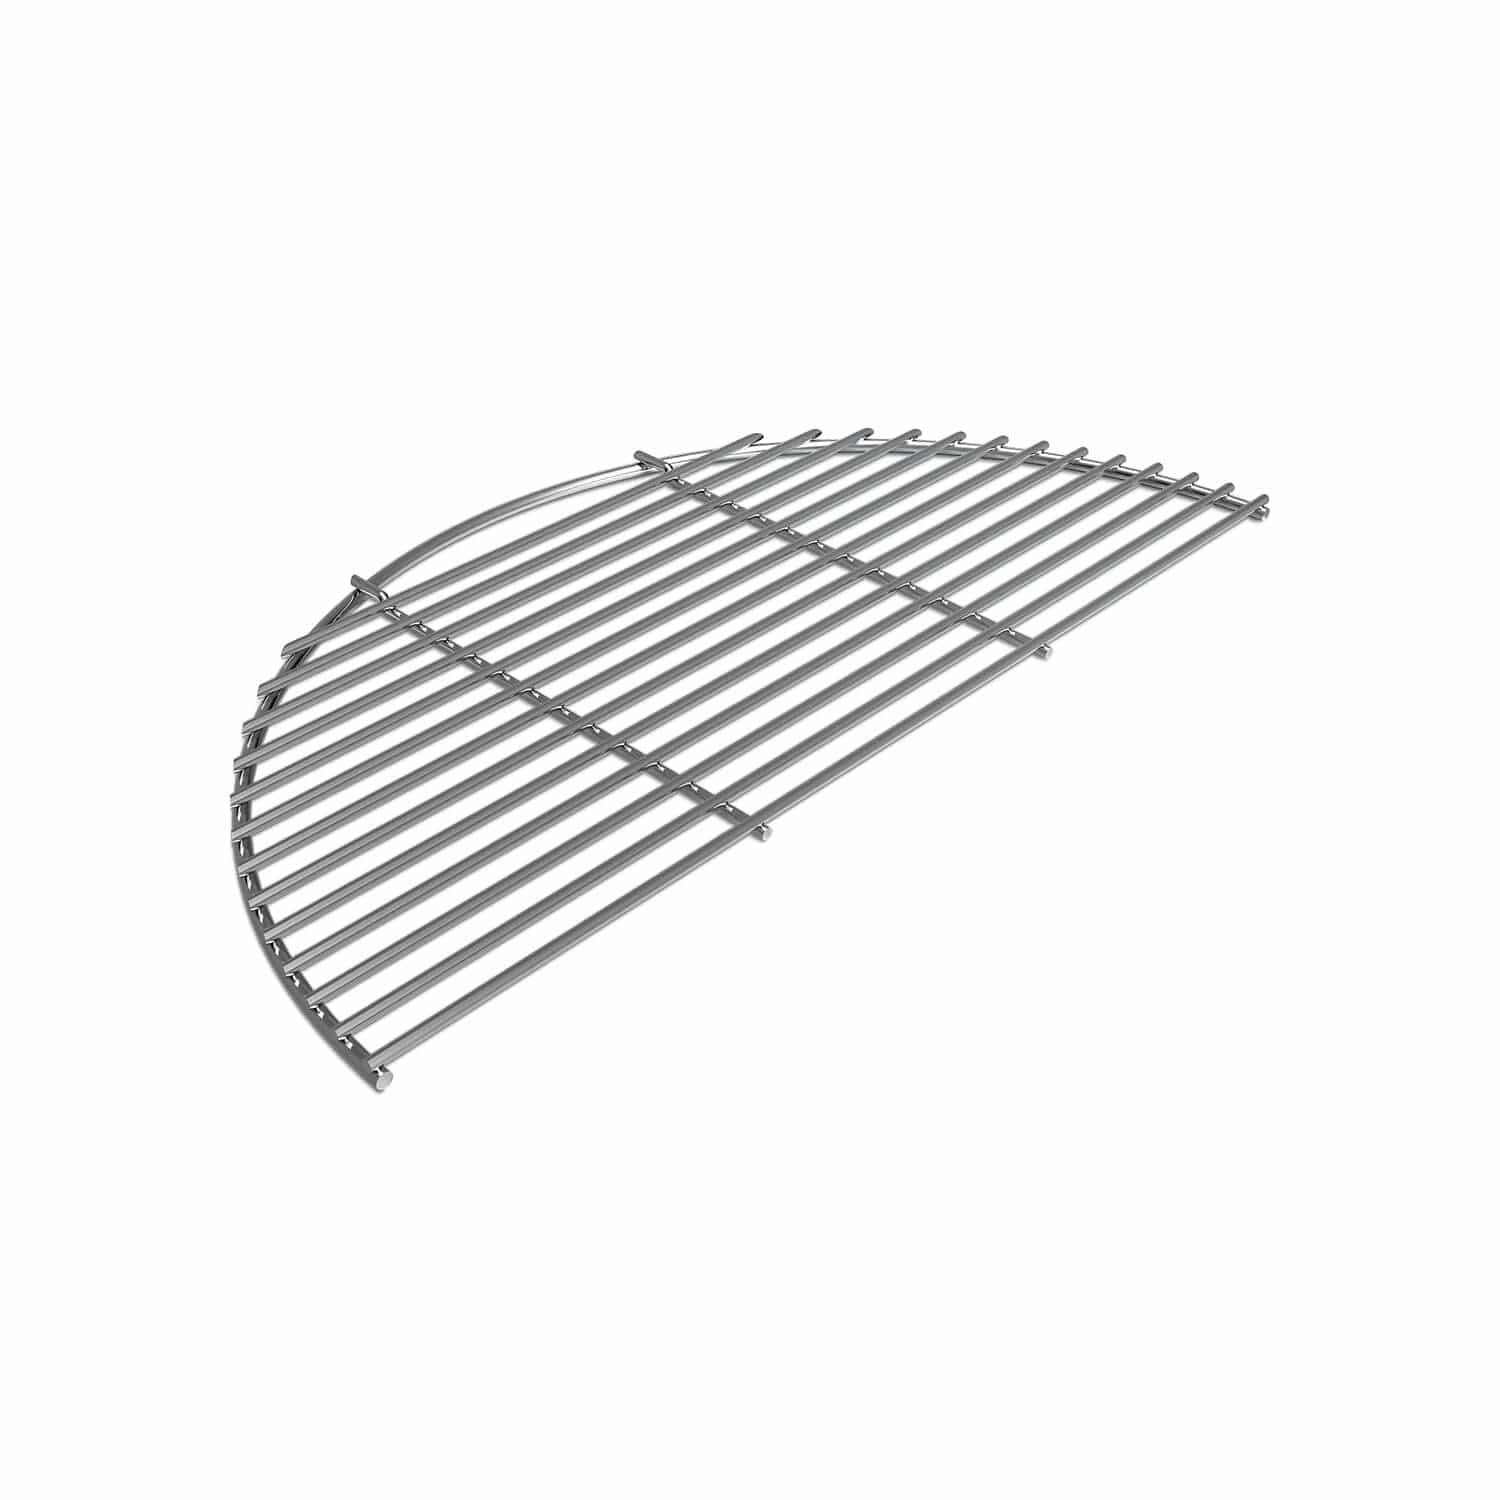 Big Green Egg Barbeque Stainless Steel Half Grid